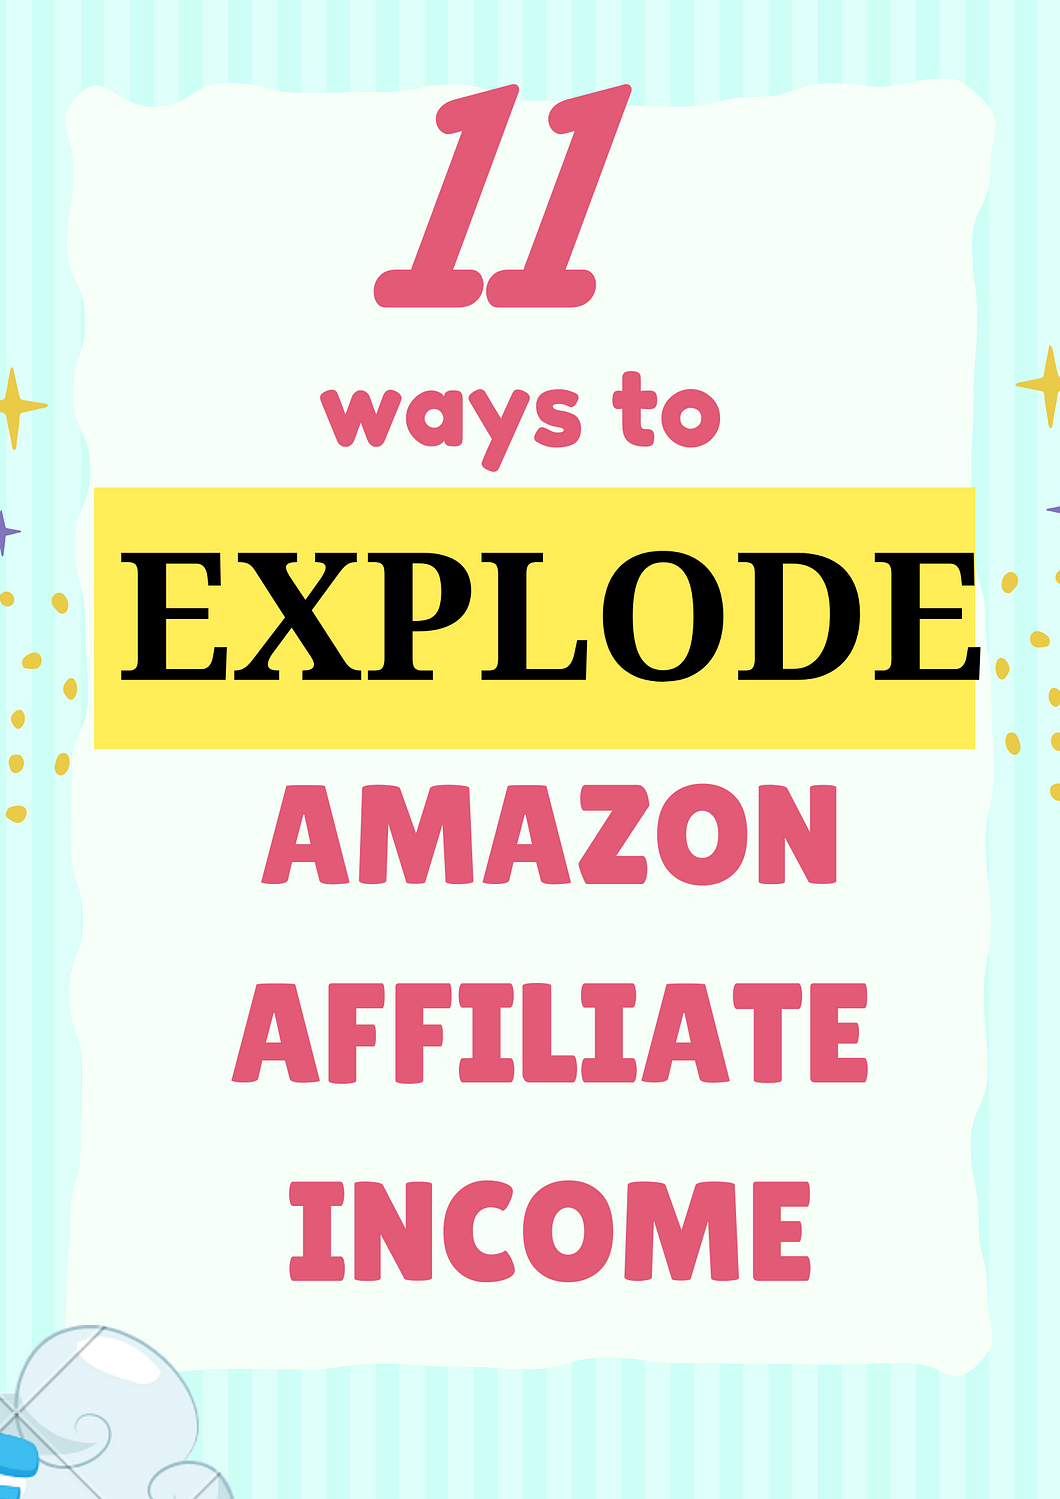 ways to explode amazon affilaite earnings